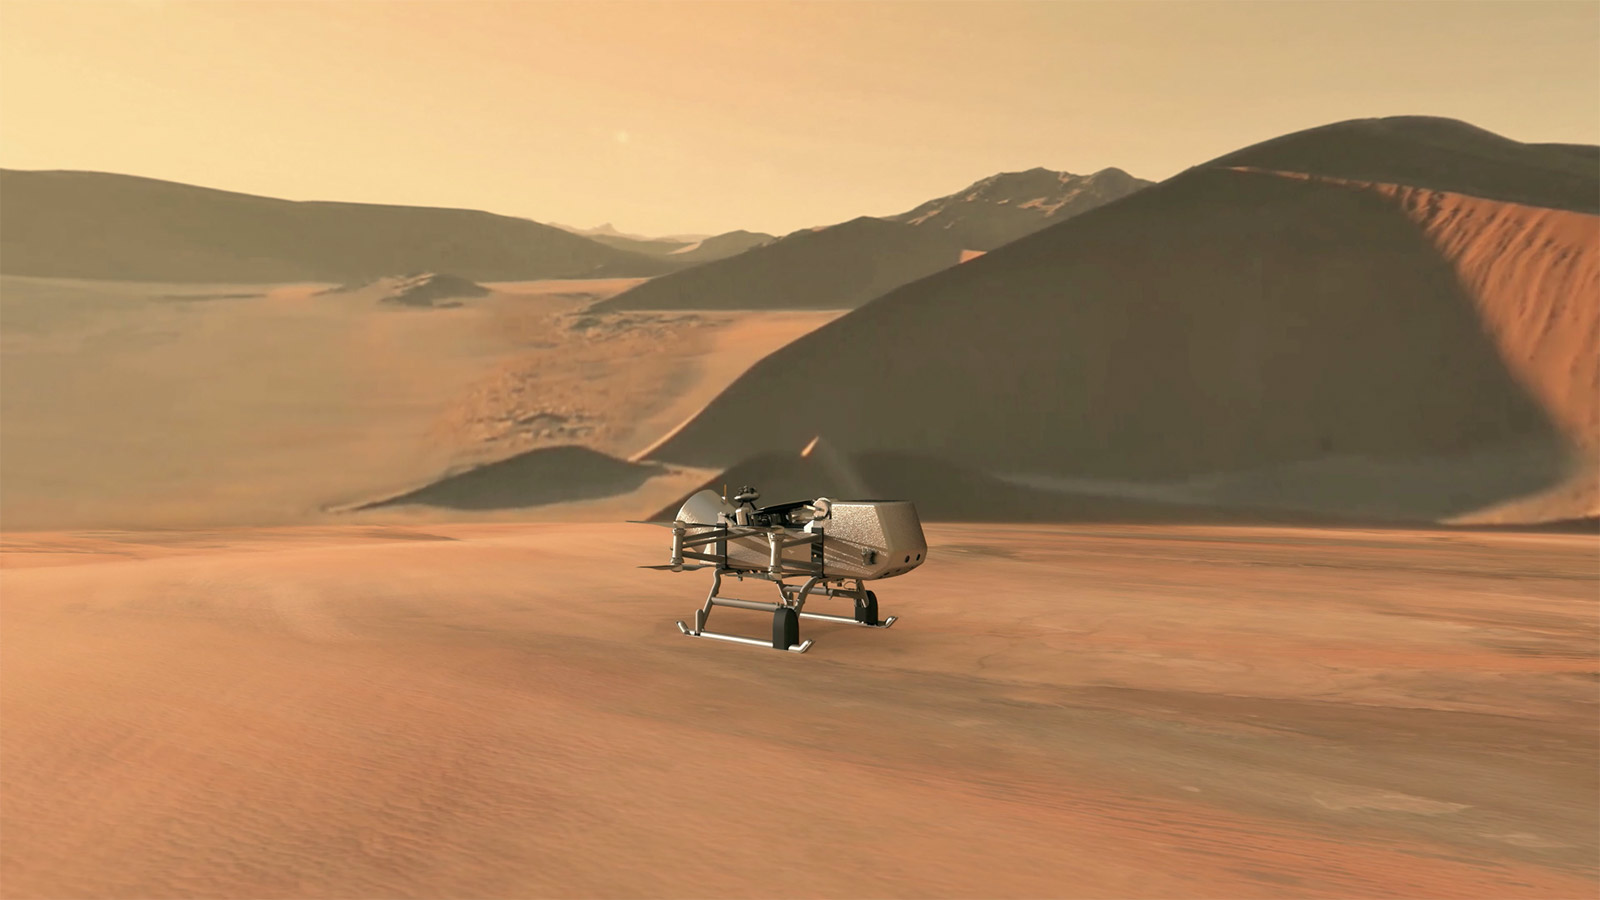 A NASA Dragonfly Drone Flying On TItan In The 2030s